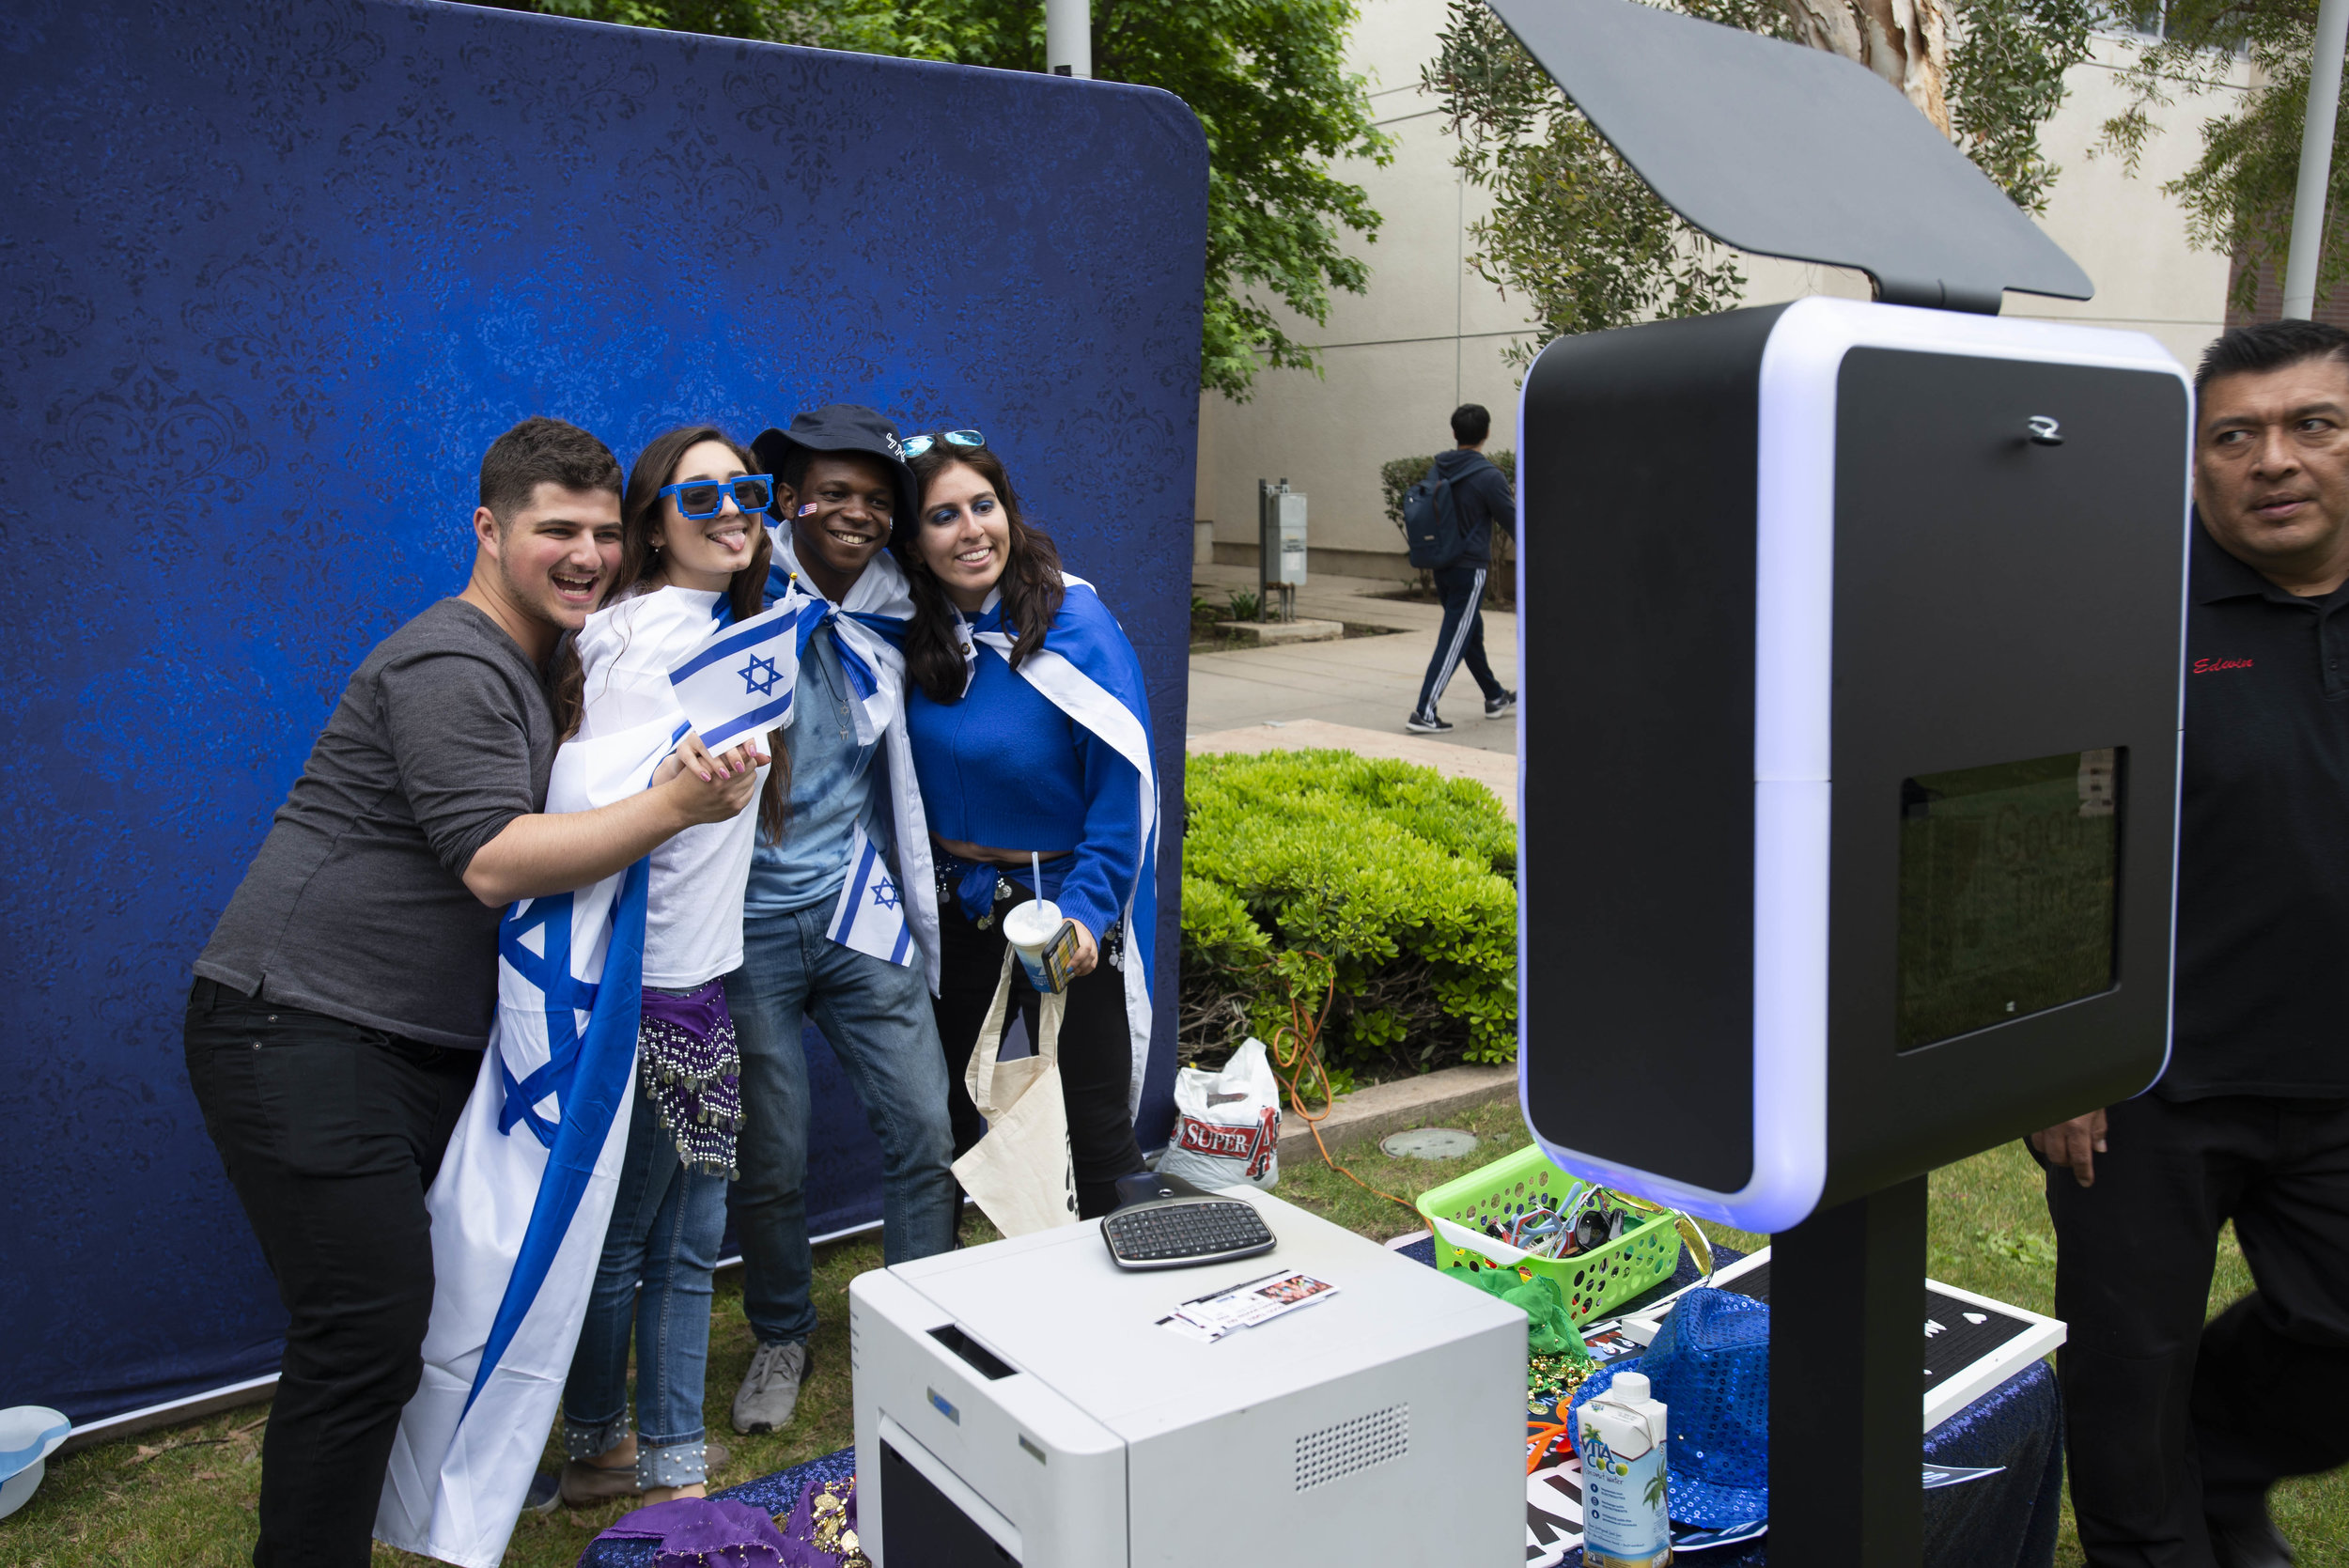 Students pose at a photo booth during the Students Supporting Israel sponsored Israeli Independence Day Festival on Thursday, May 9, 2019 (Andrew Narvaez/ The Corsair)